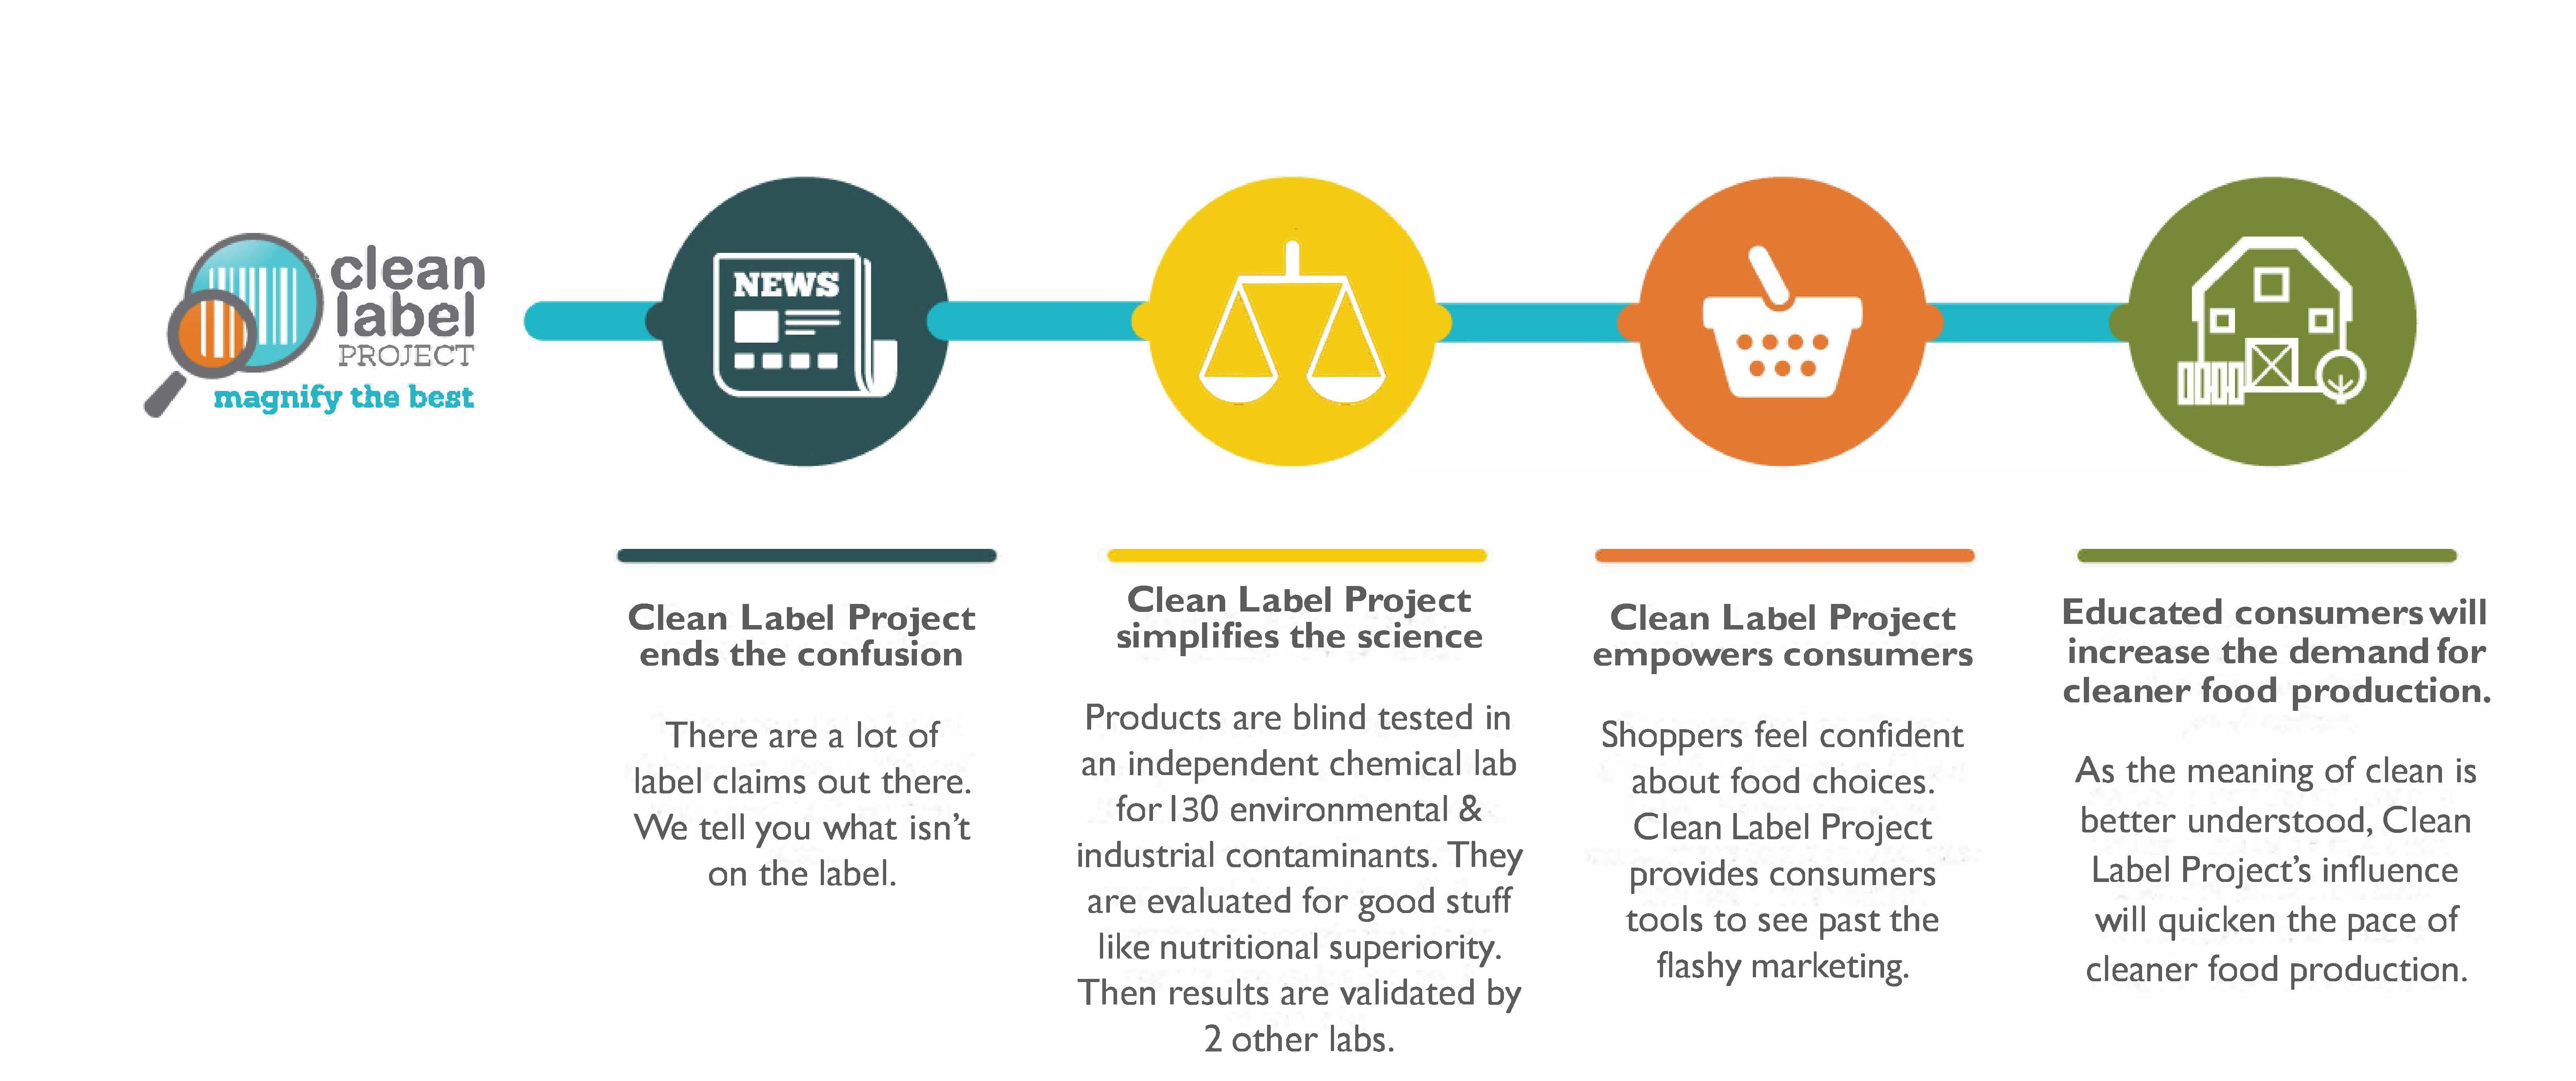 Methodology - Clean Label Project